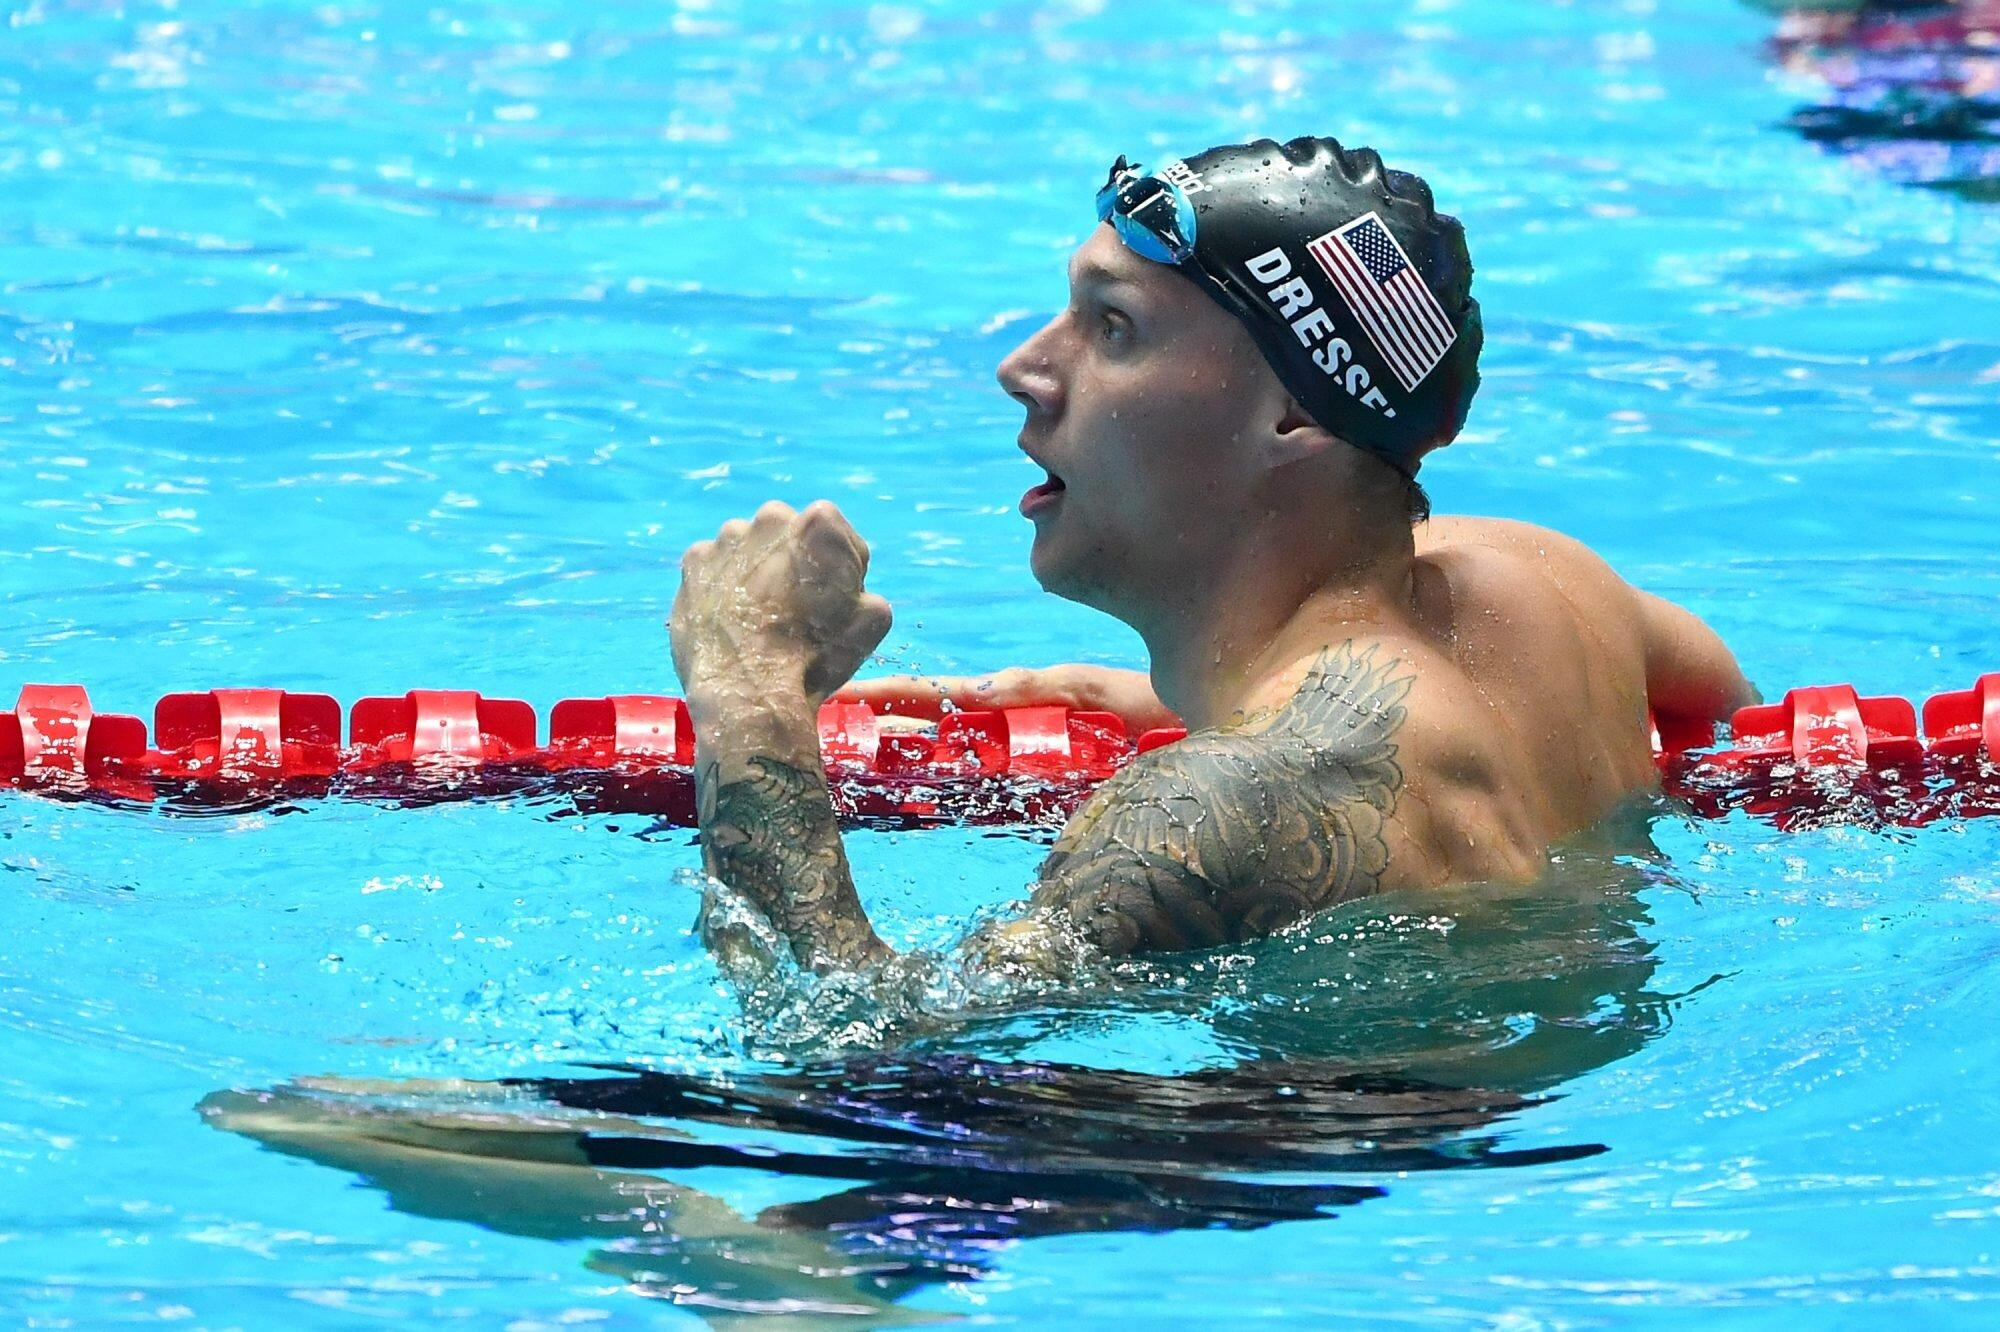 Caeleb Dressel Wins Second Gold at Tokyo Olympics, Sets New Olympic Record  in Men's 100m Freestyle